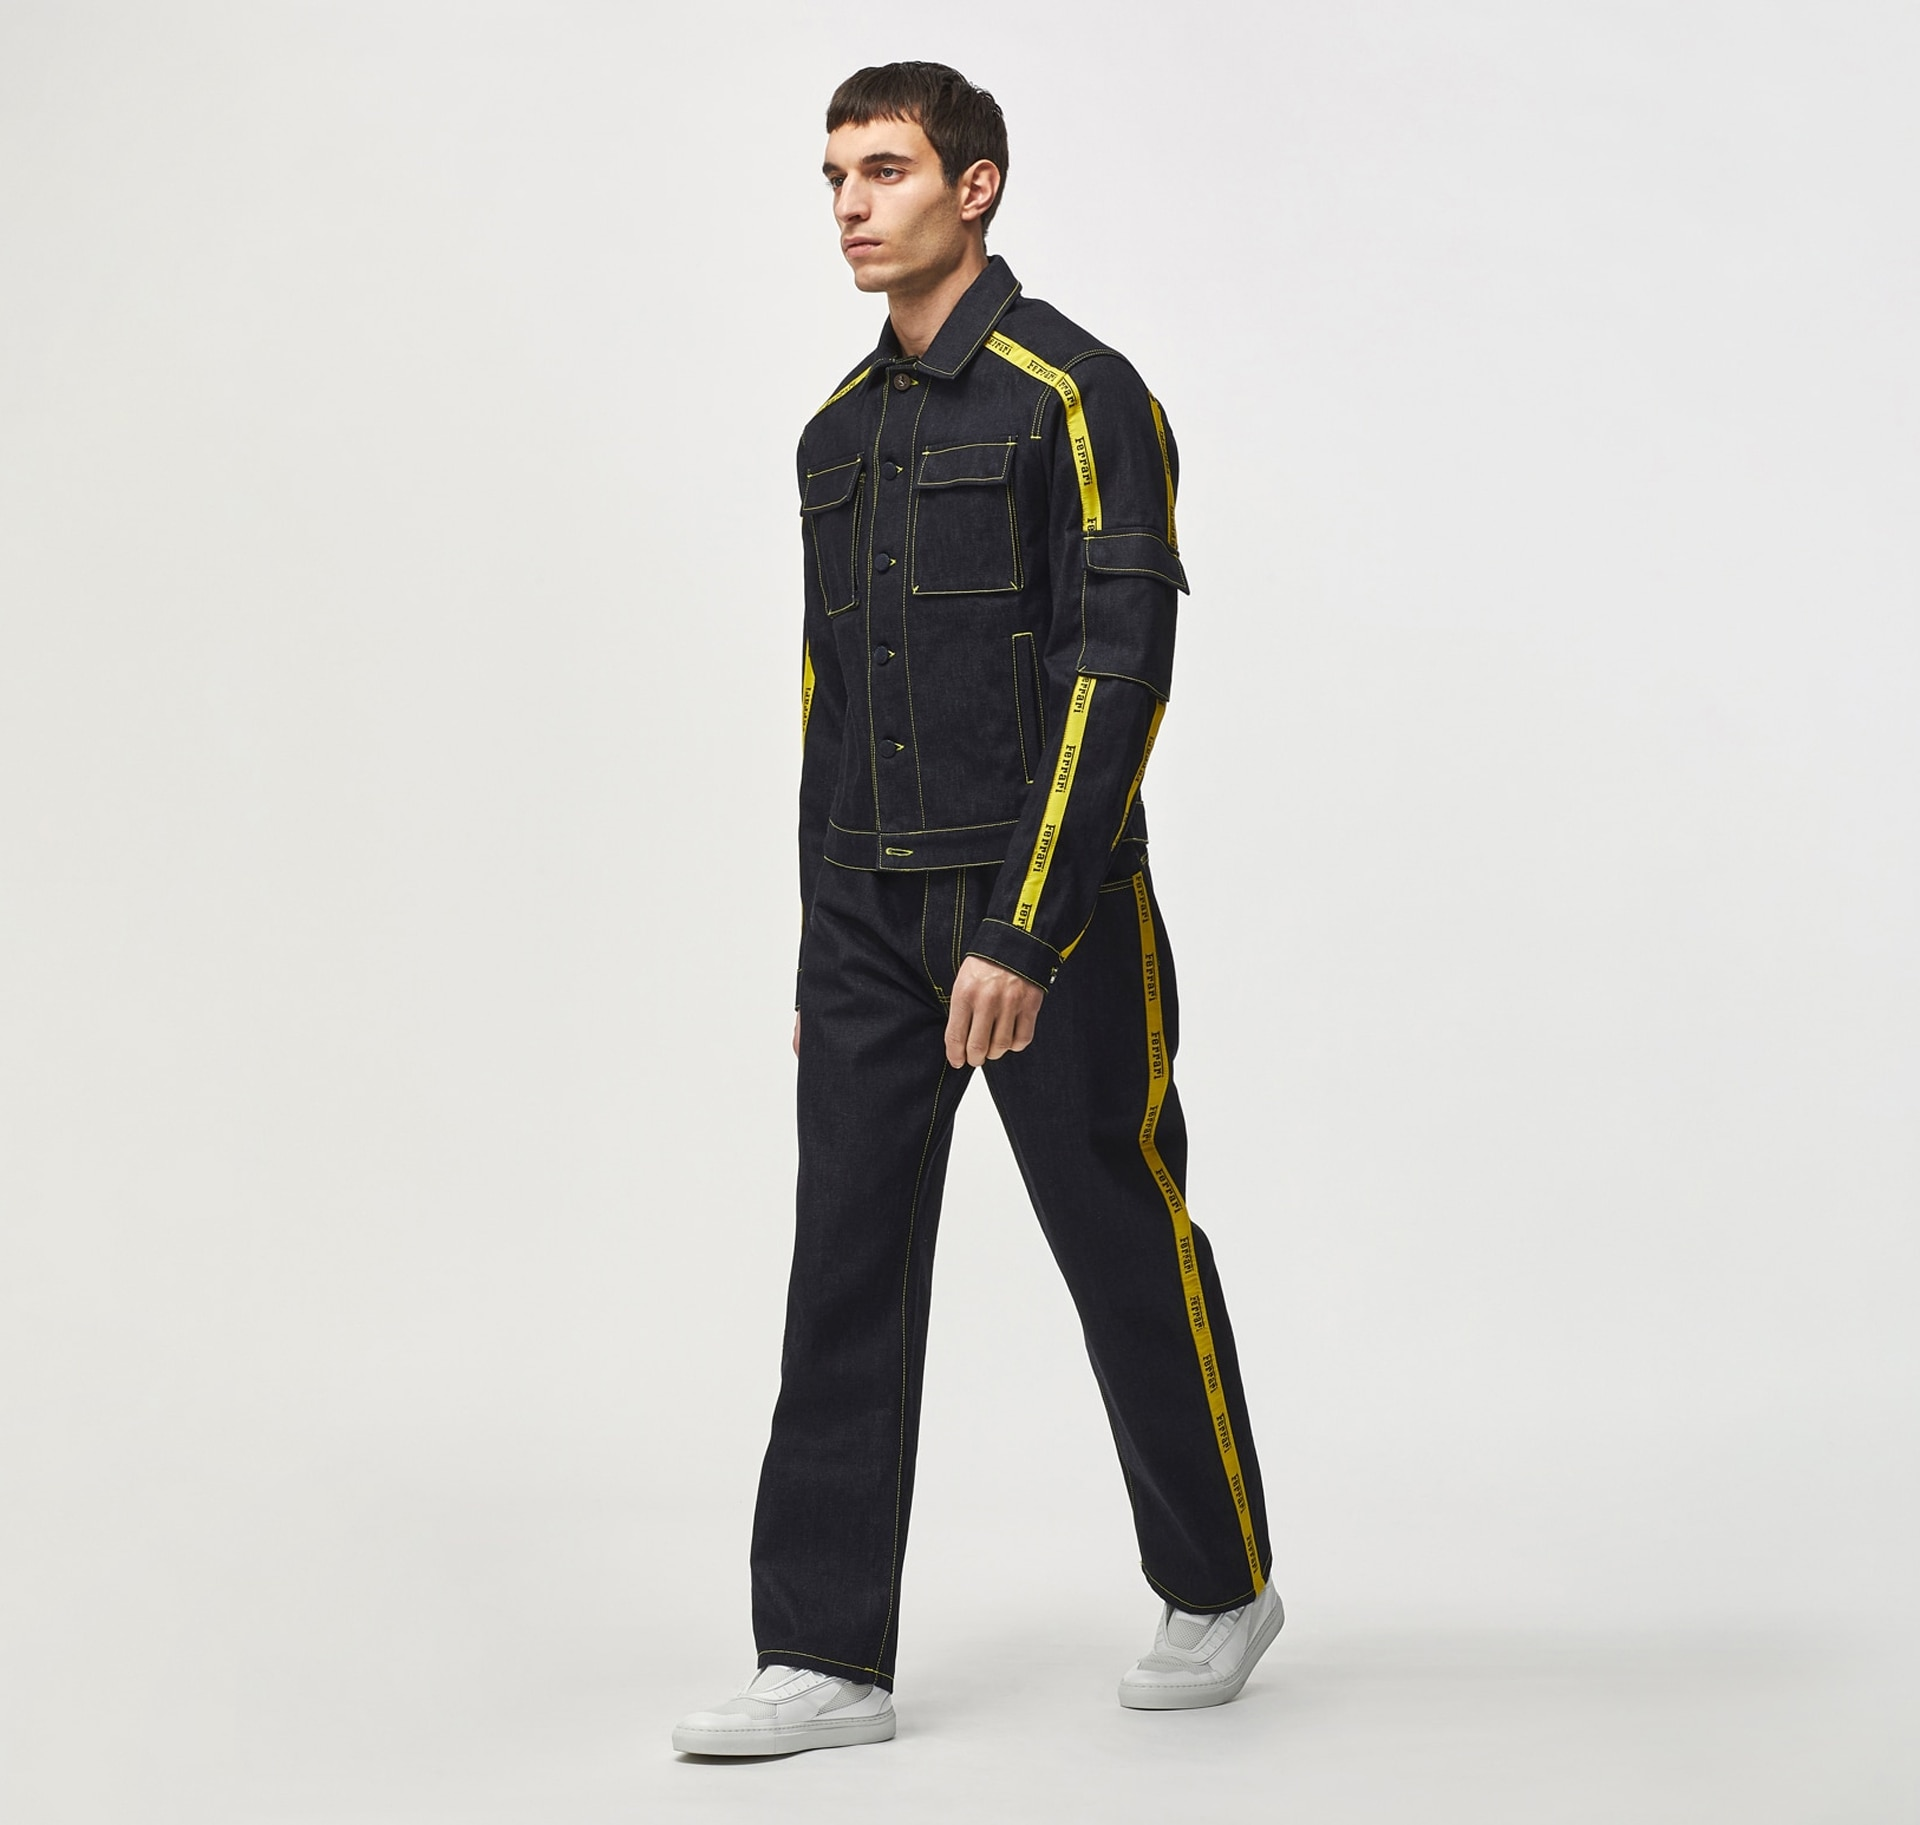 Model wearing a black denim suit with a yellow stripe and white sneakers